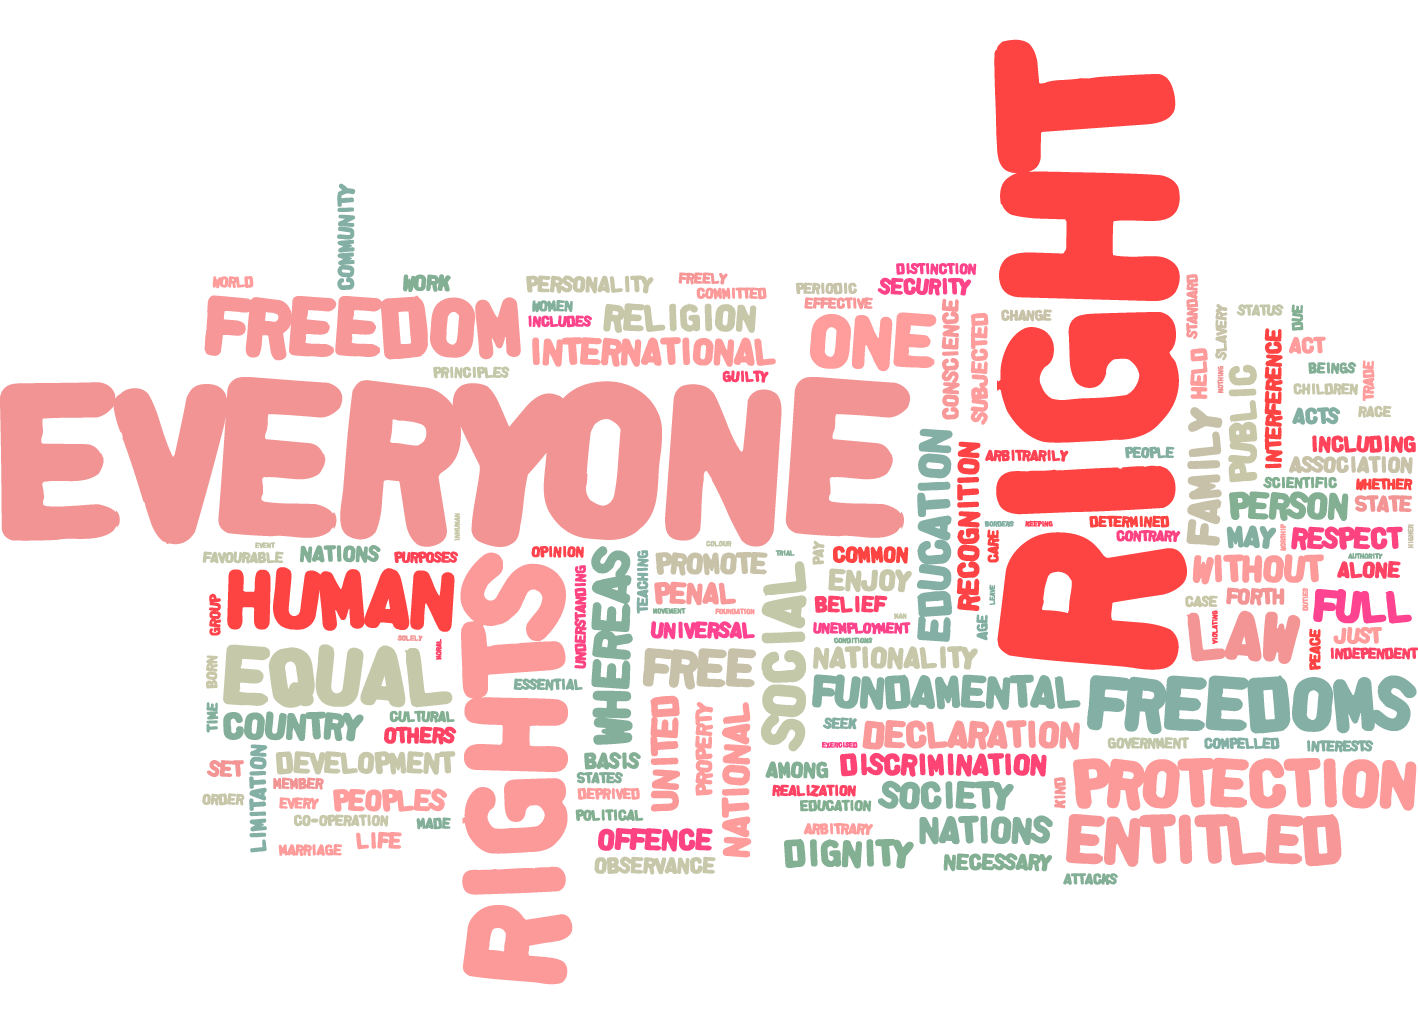 human rights the rights to be human blog di cristiana ziraldo universal declaration of human rights